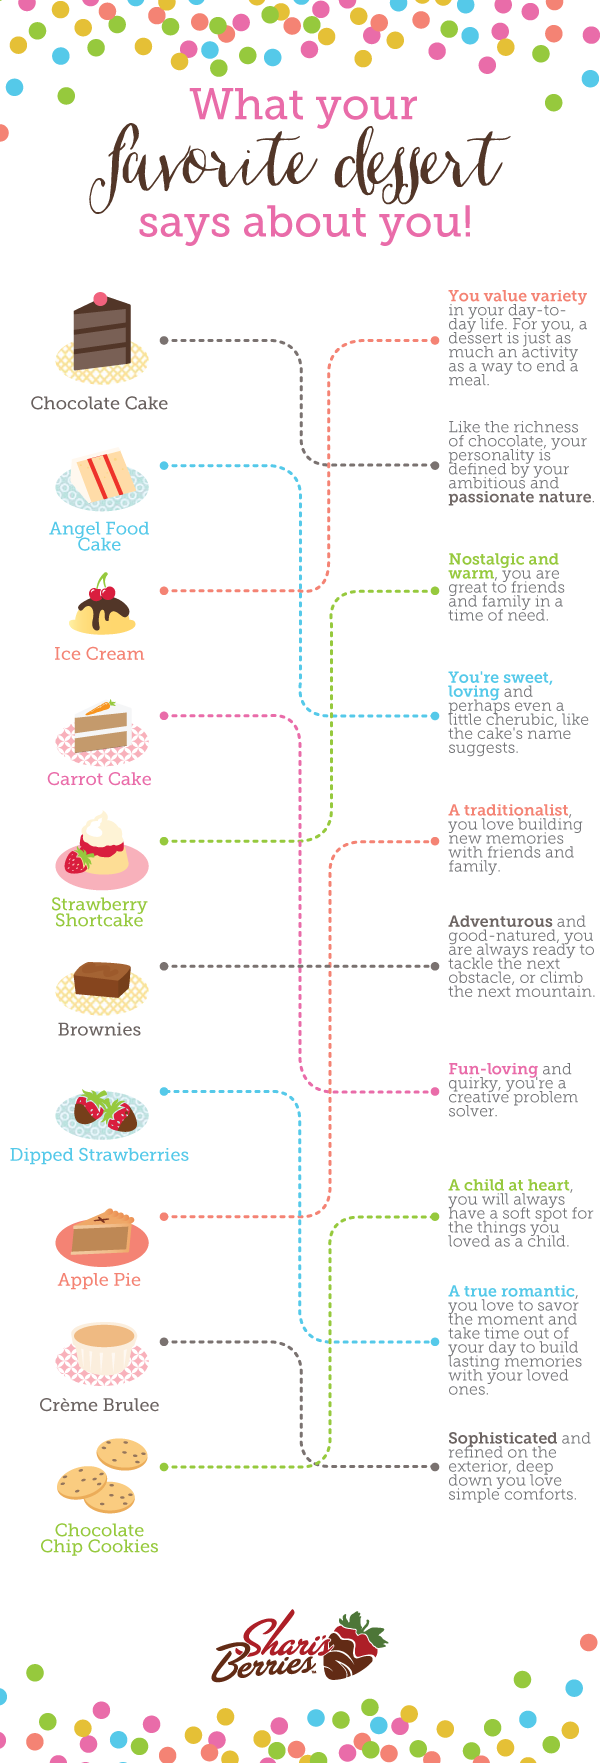 What does your Favorite Dessert say about you